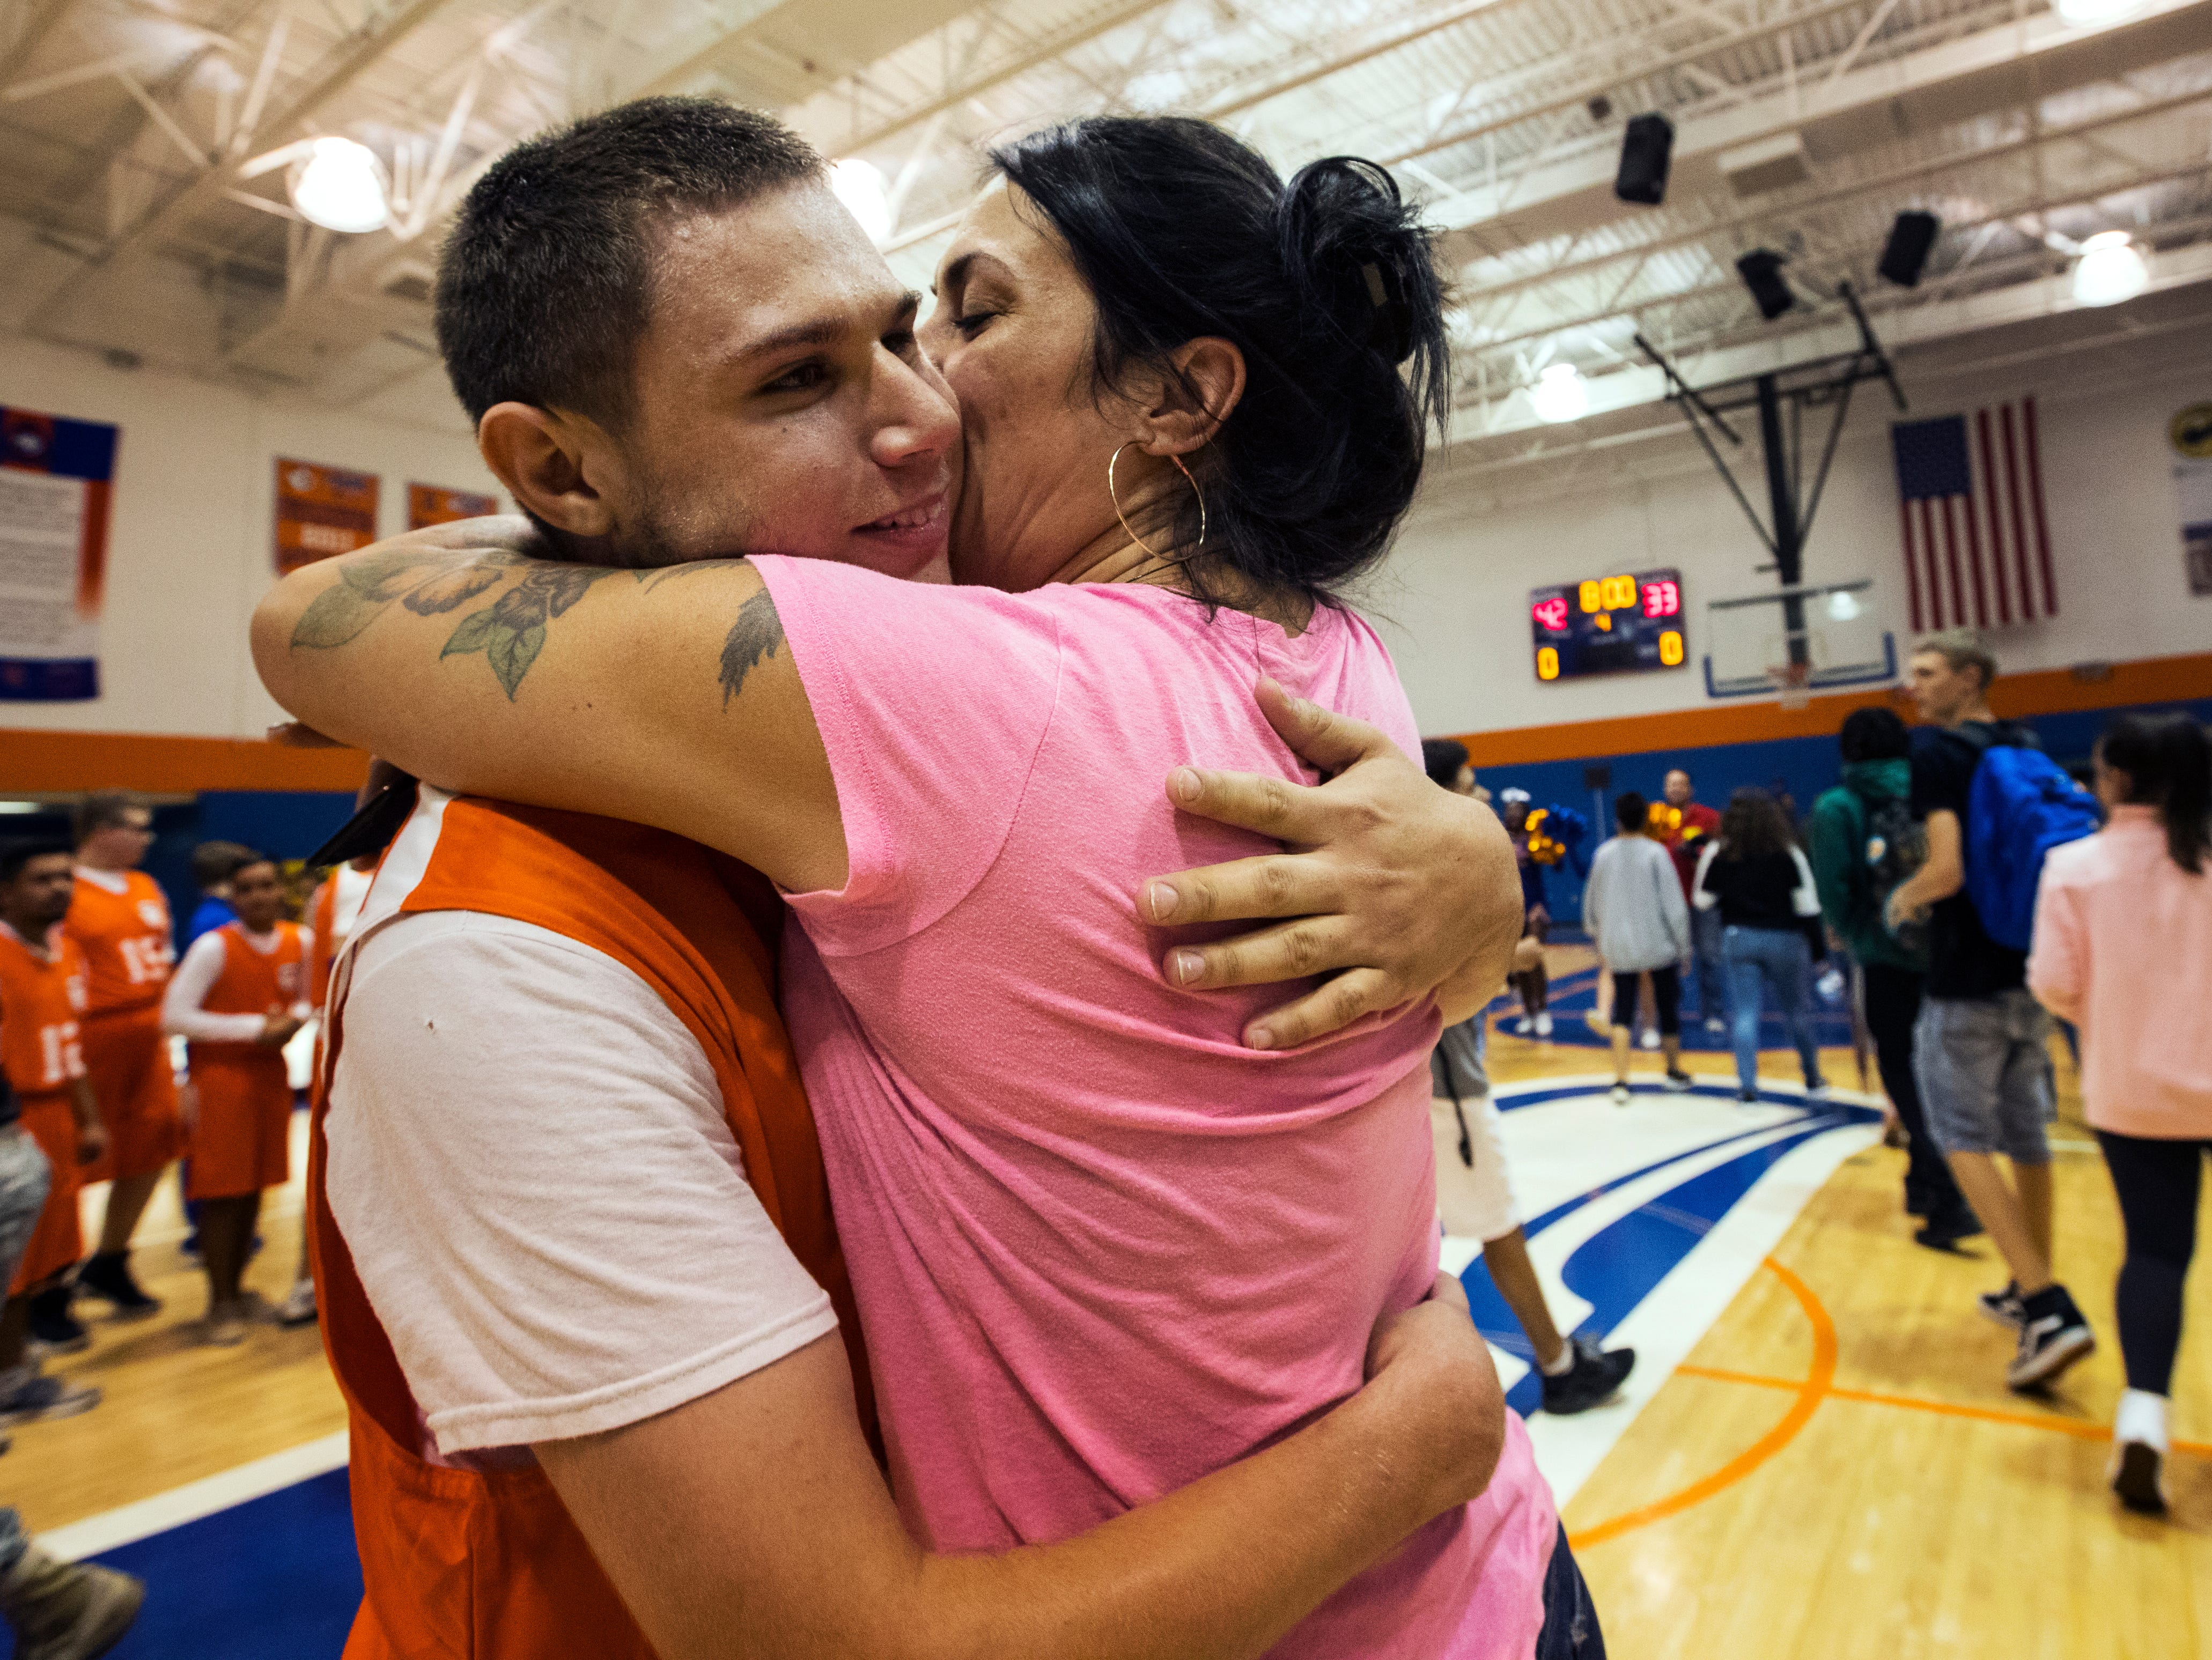 Cape Coral High School student-athlete Luis Duran, 17, gets a kiss from his mother, Penelope Rodriguez, after facing Mariner High Friday morning, November 16, 2018. Duran was a key player for the team's victory against Mariner High School. The two schools faced off in a Unified sports basketball game. Lee County schools have significantly expanded the size, reach and potential impact of its Special Olympics commitment this year with the addition of what is known as Unified sports, in which students with and without disabilities work together on organized teams for a season. A number of Lee County high schools are participating this first year and are playing already in basketball, one of four high school Special Olympics sports. Track and field will be held in the spring. Flag football and soccer will be added in the future and reach the middle school level. The goal: greater participation, inclusion and understanding.